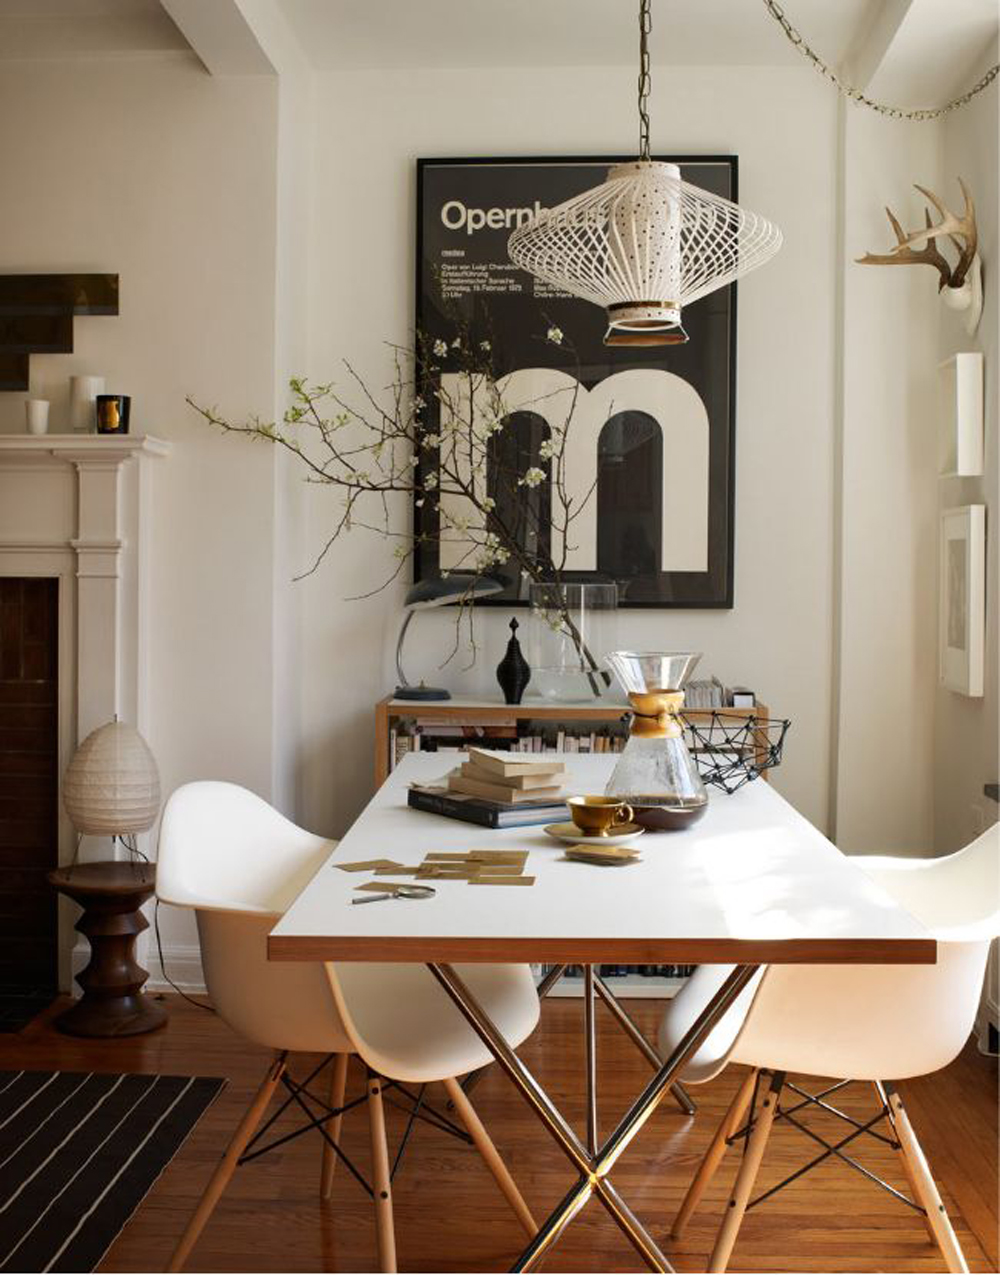 It come arredare una casa in modo chic da pinterest a decor how to - La casa arredamento ...